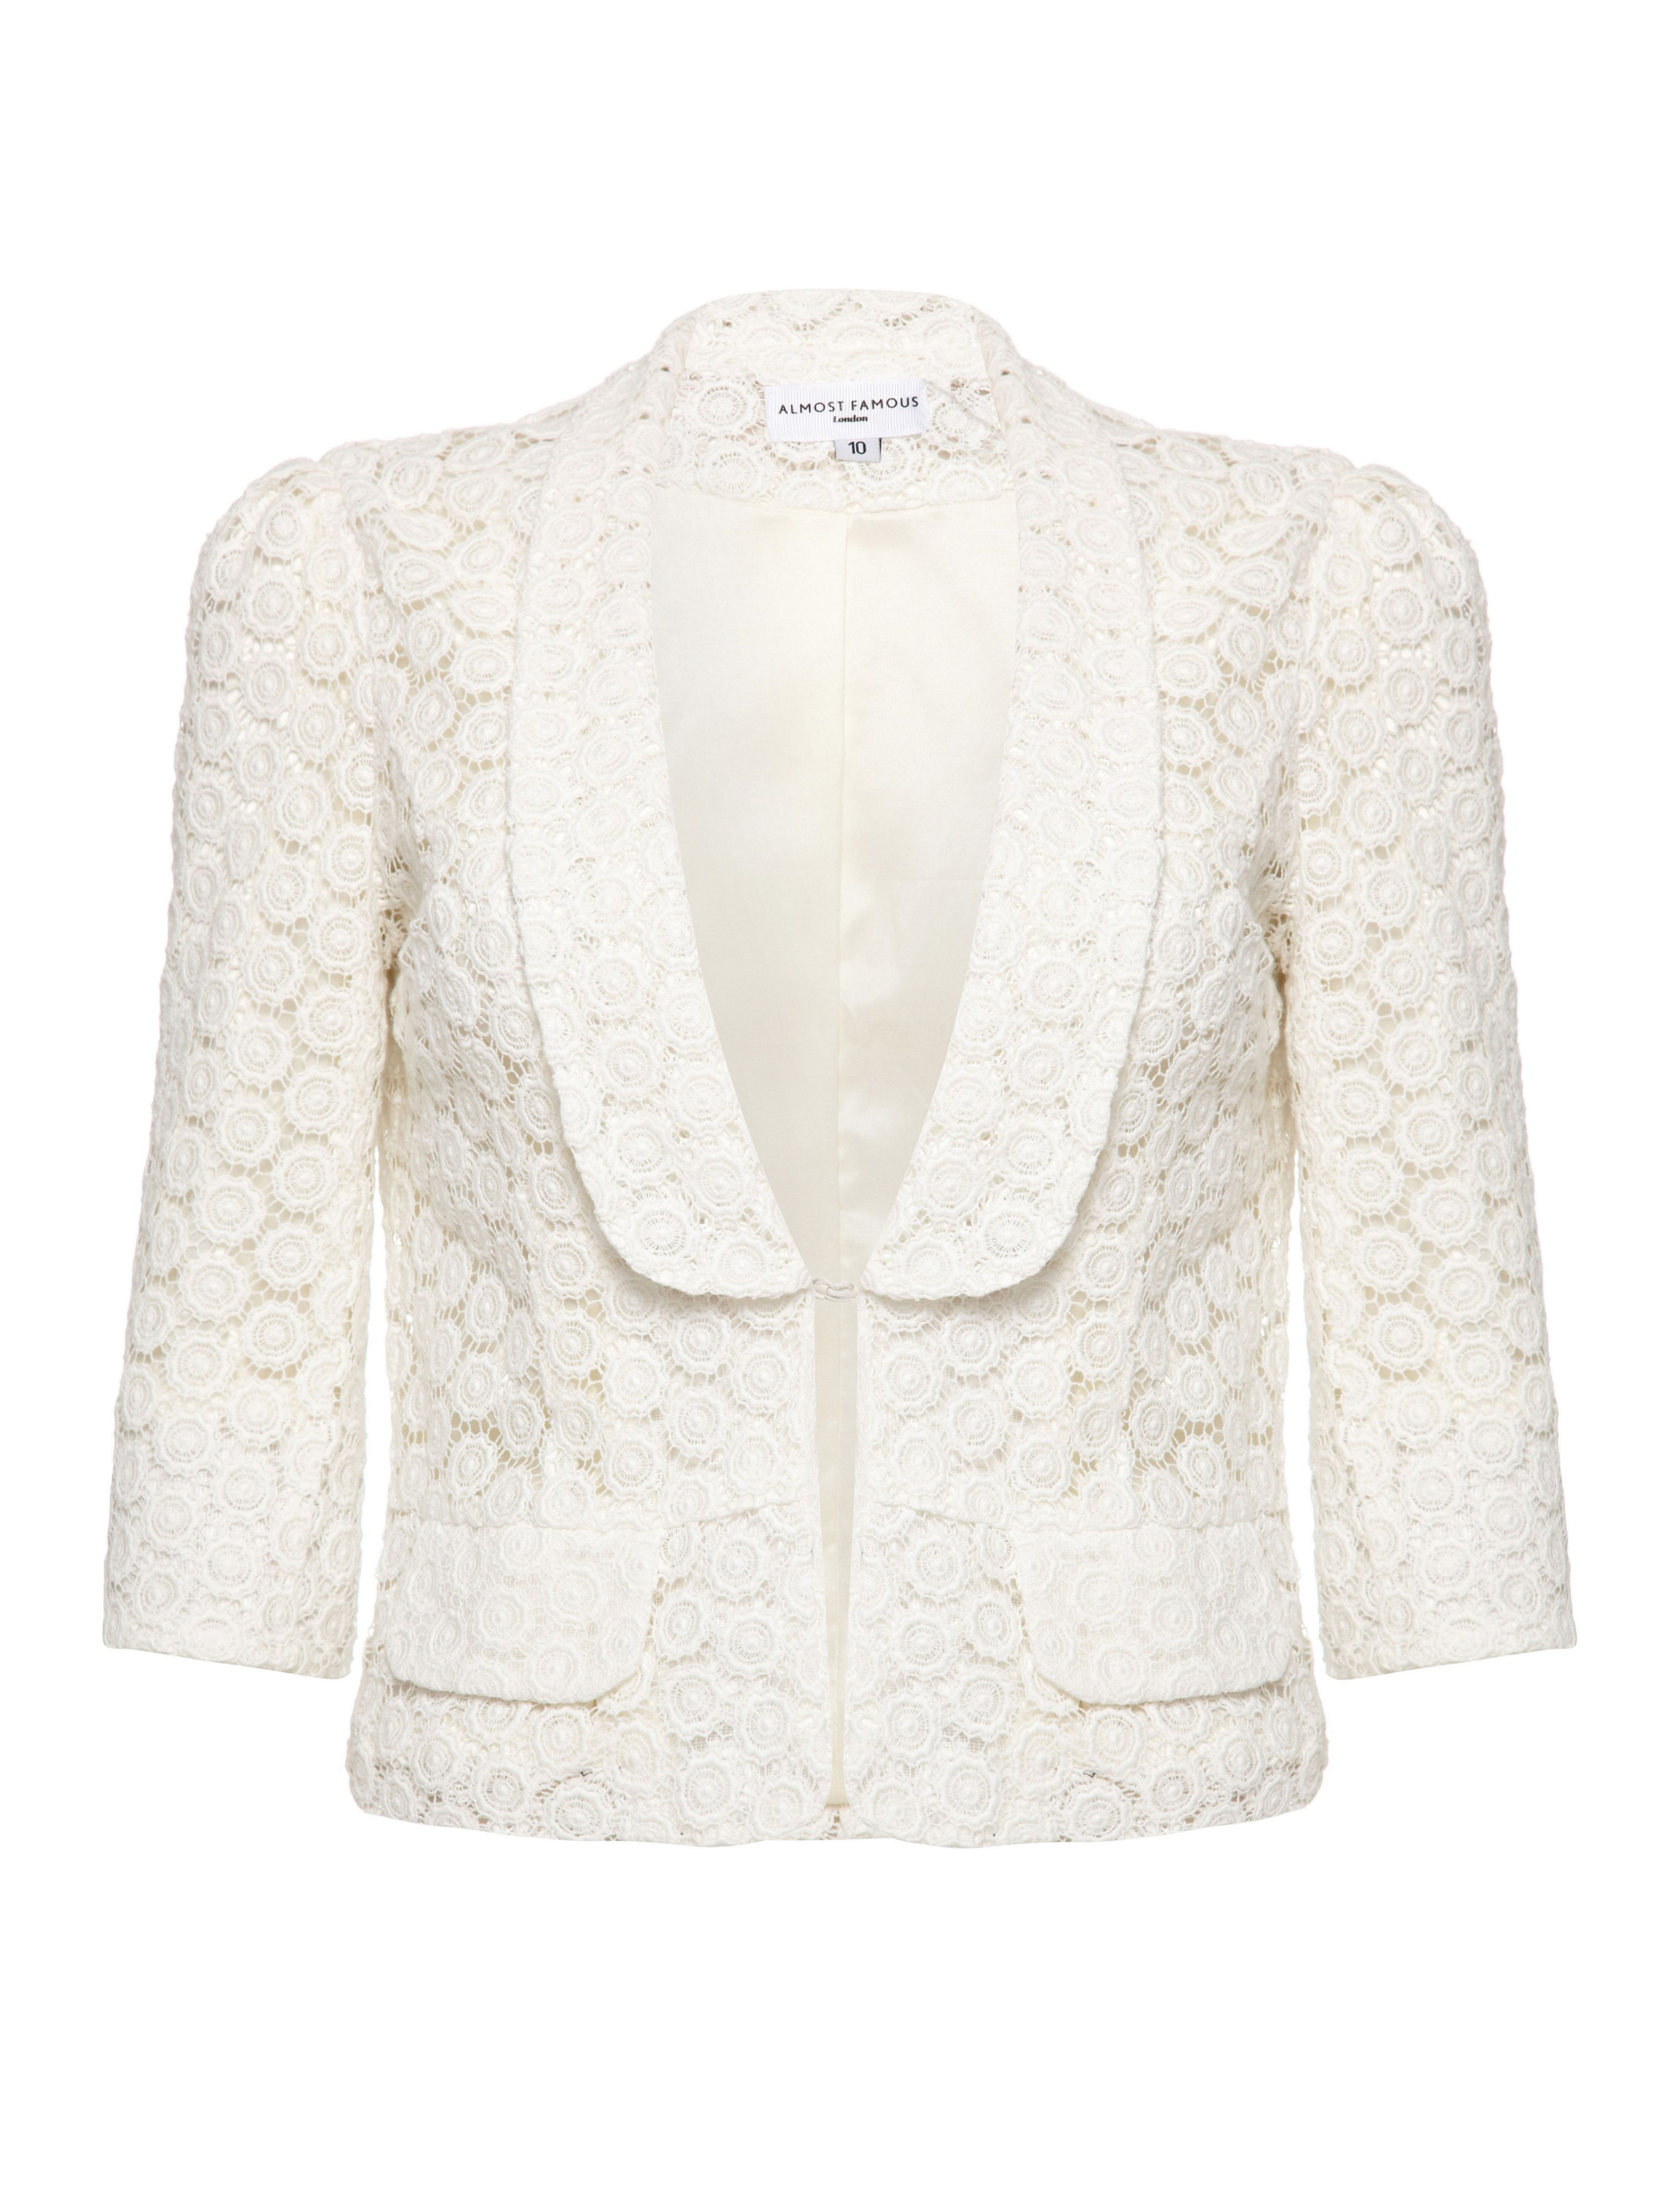 Lace occasion jacket